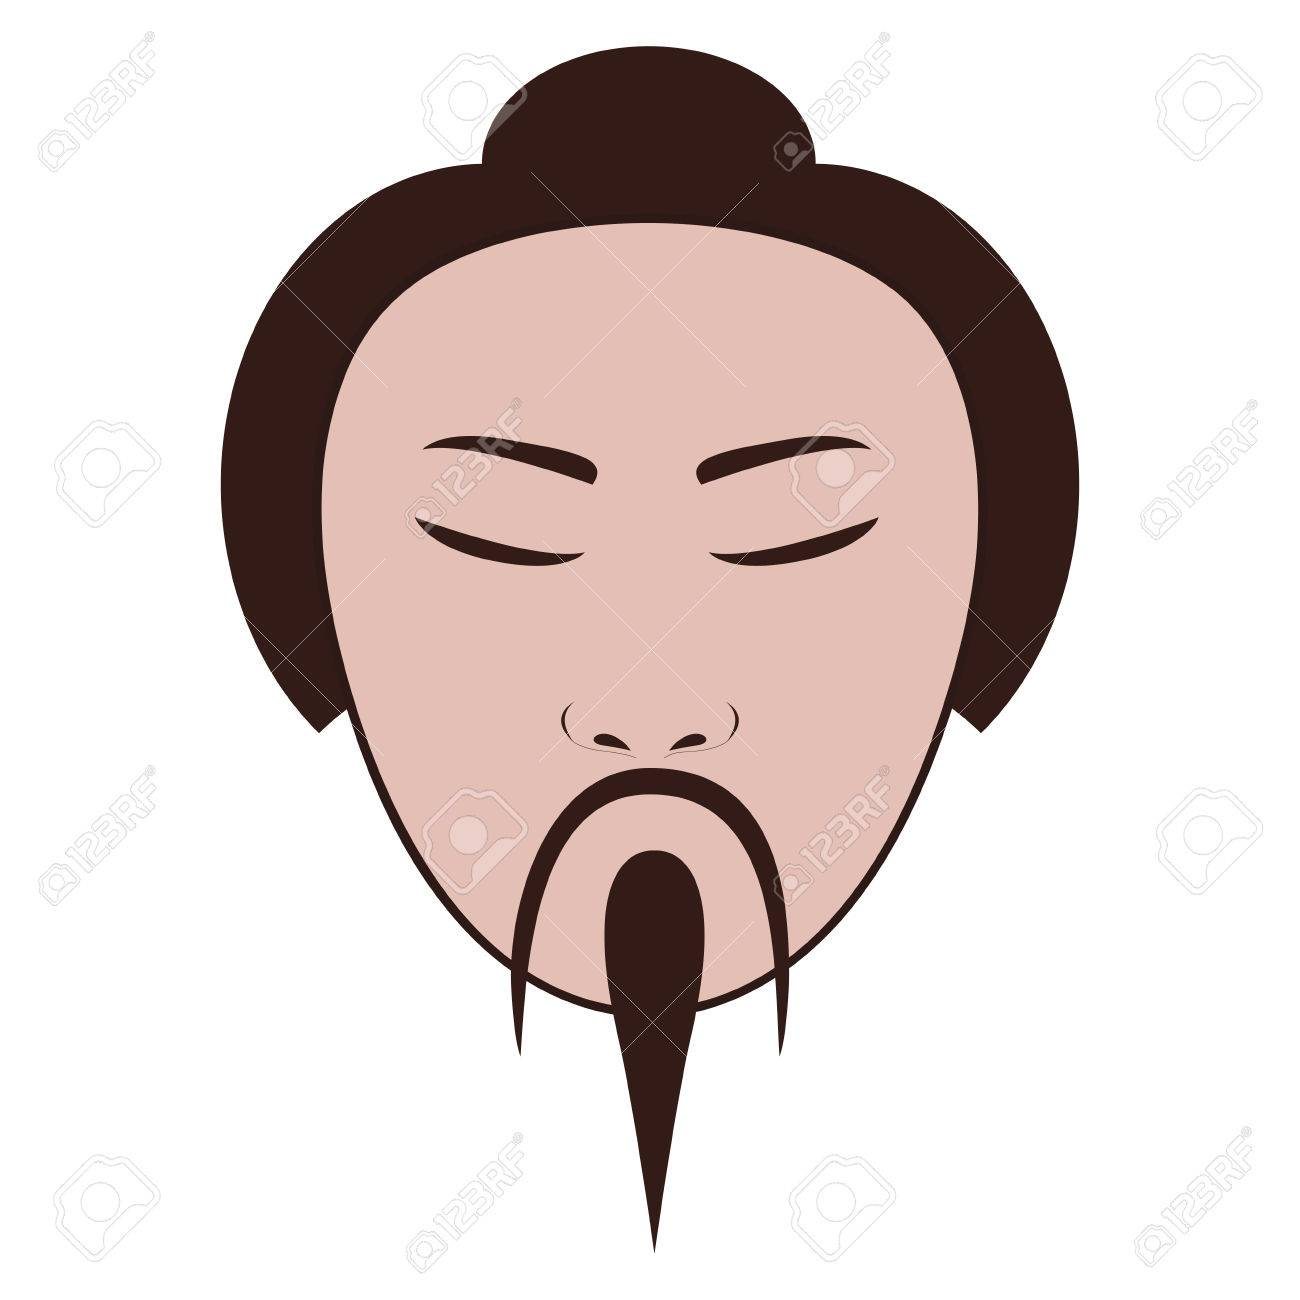 East Asian Man Icon Image Vector Illustration Design Royalty Free.